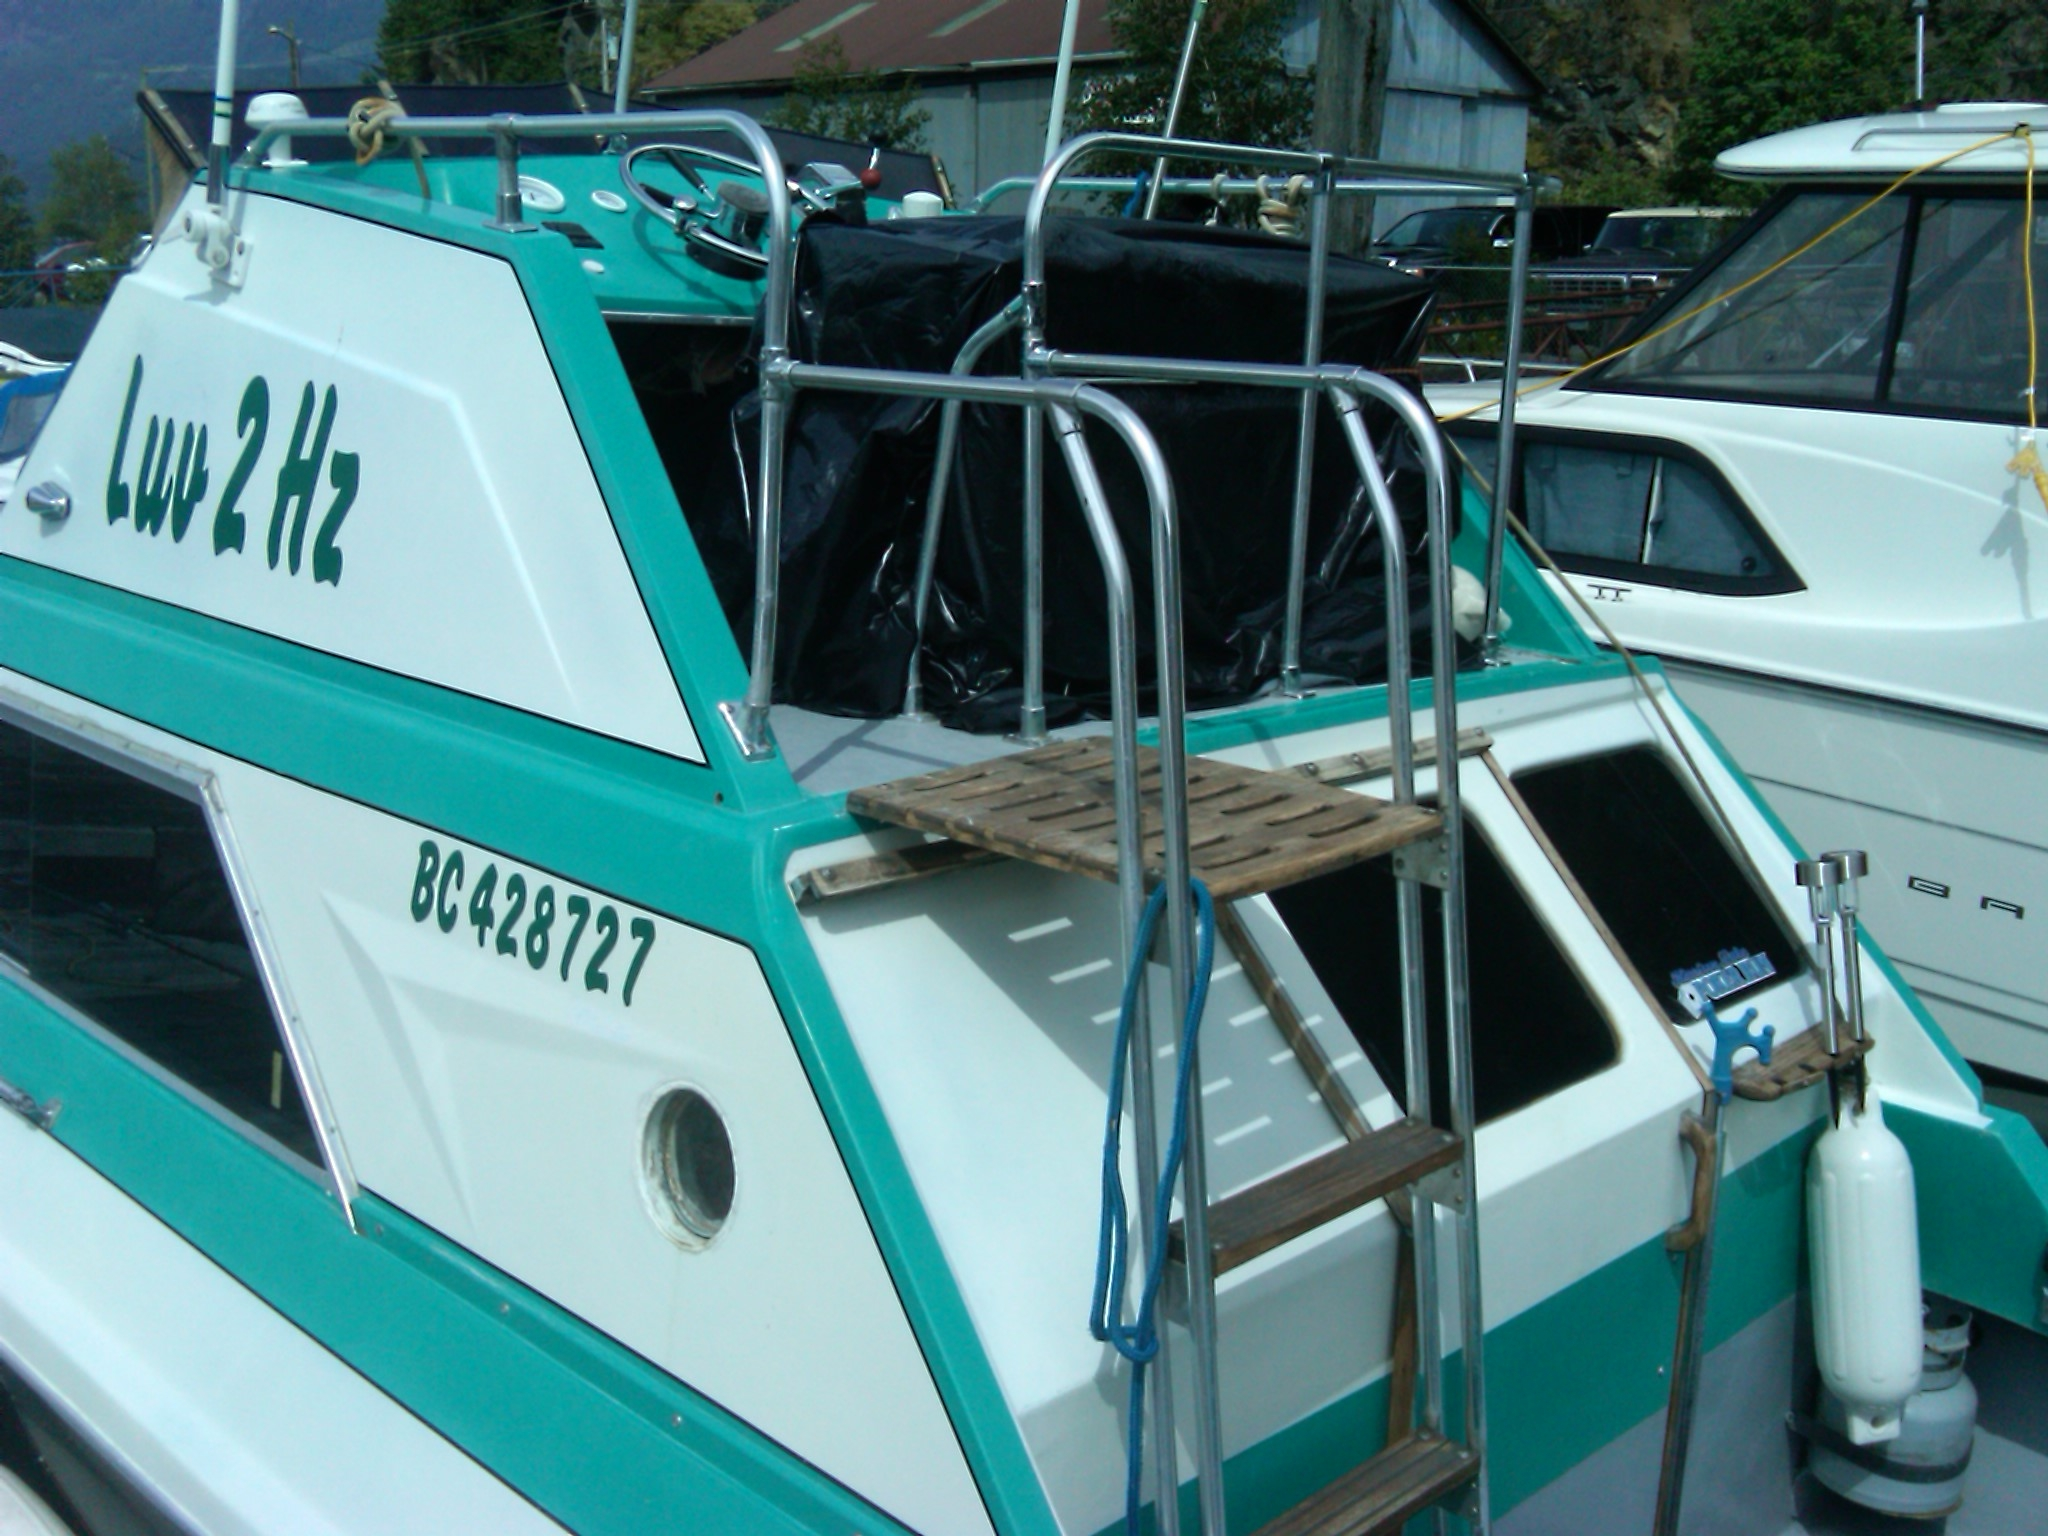 Fiberform Did They Even Exist Boat Design Net Wiring Diagram Advice For Small Page 1 Iboats Boating Boat2